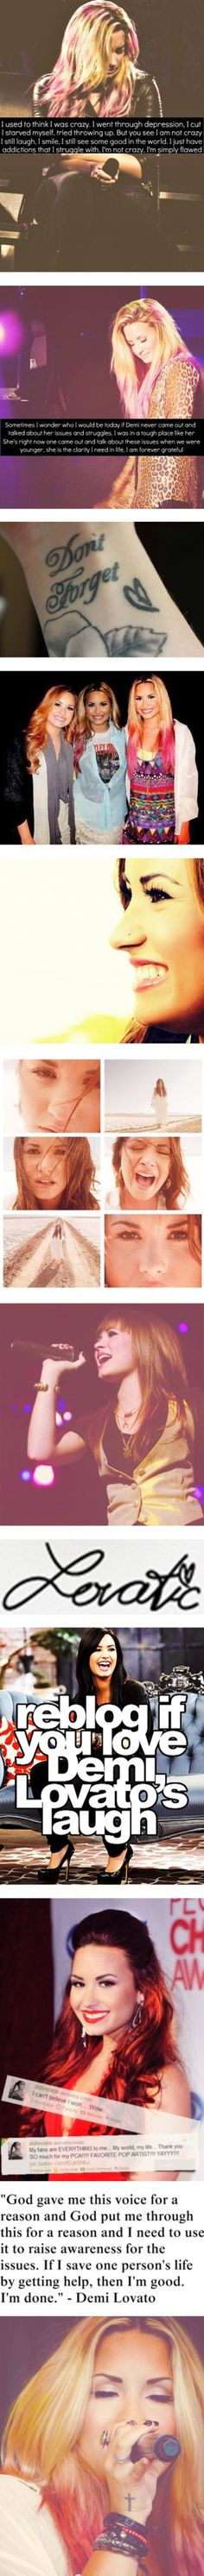 """""""its a lovatic thing ;)'' I sooo adore Demi :') she's the best person and the greatest role model"""